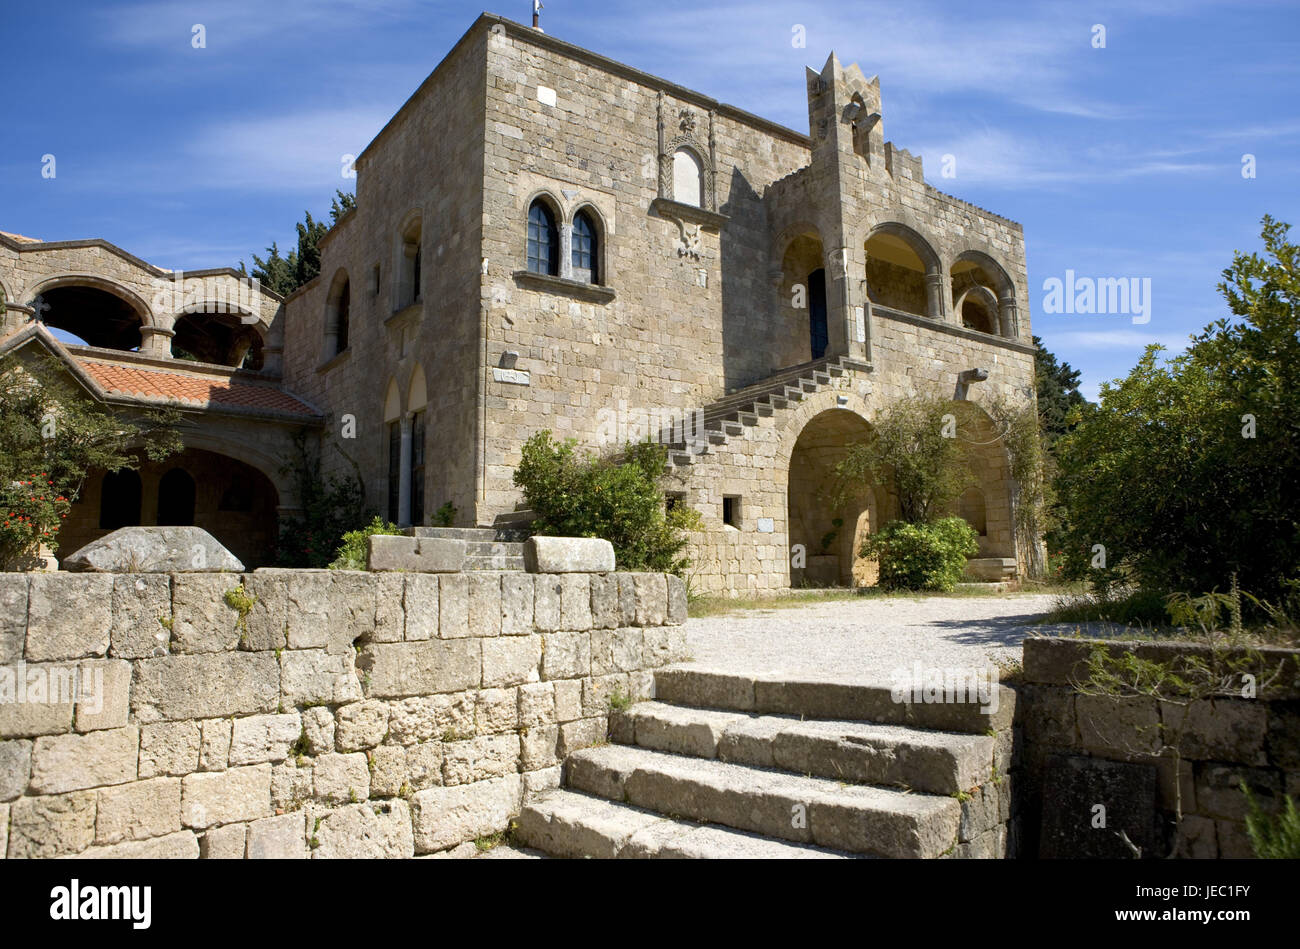 Greece, Rhodes, minster Filerimos, tower, building, cross, Knights of Malta, church, building, outside, religion, - Stock Image